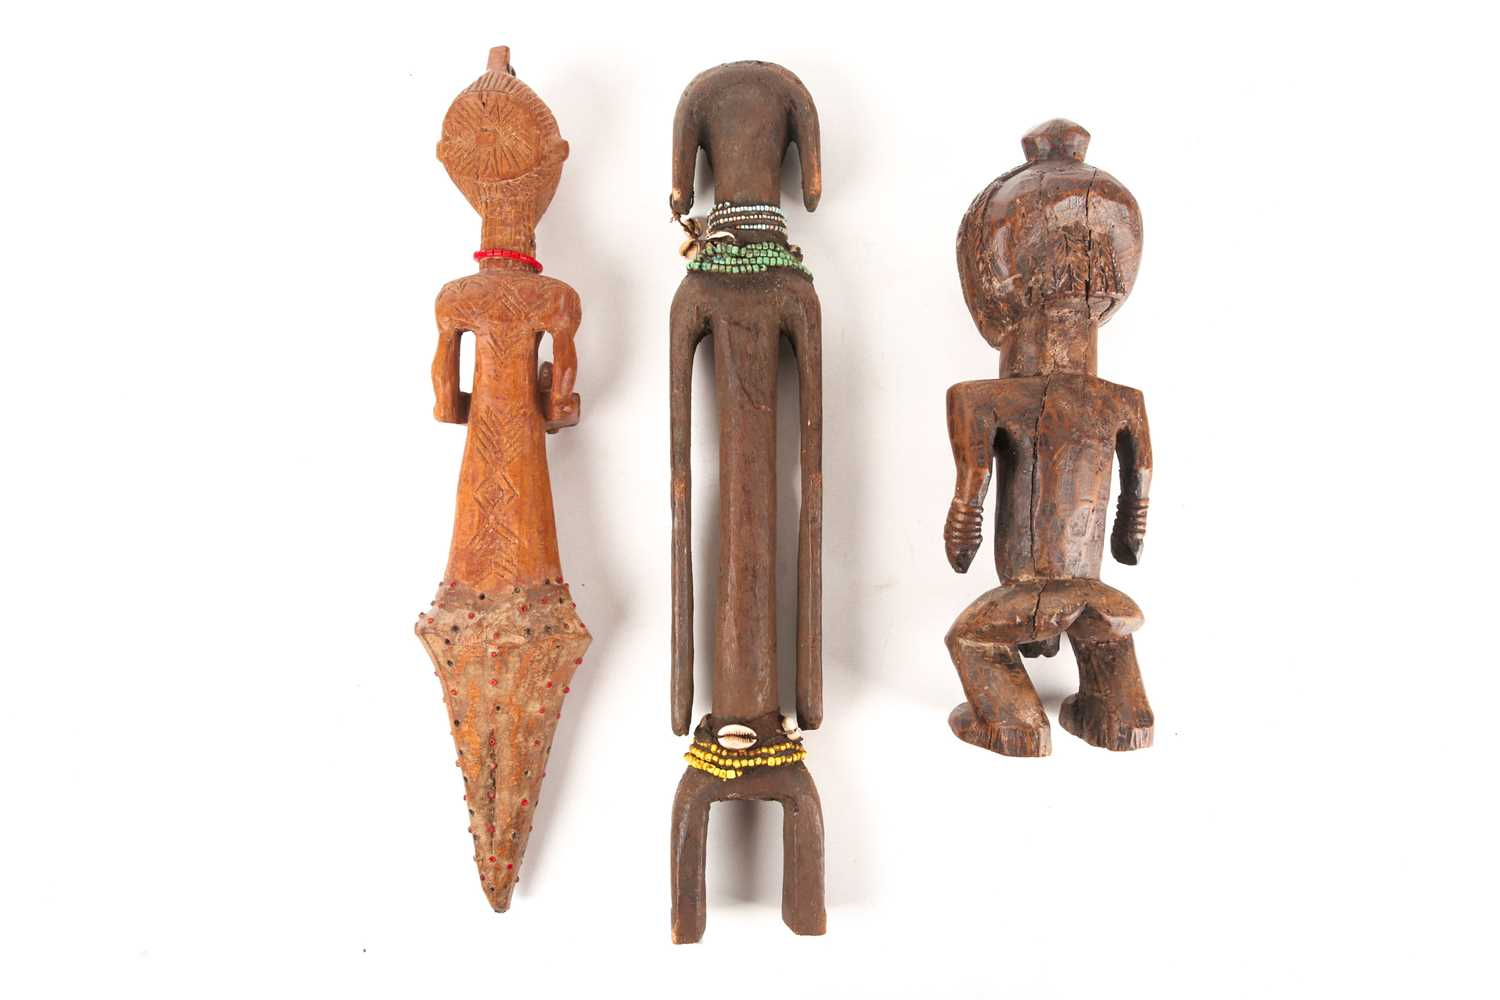 A Mumuye standing ancestor figure, Nigeria, adorned with coloured glass beads and cowrie shells, the - Image 2 of 2